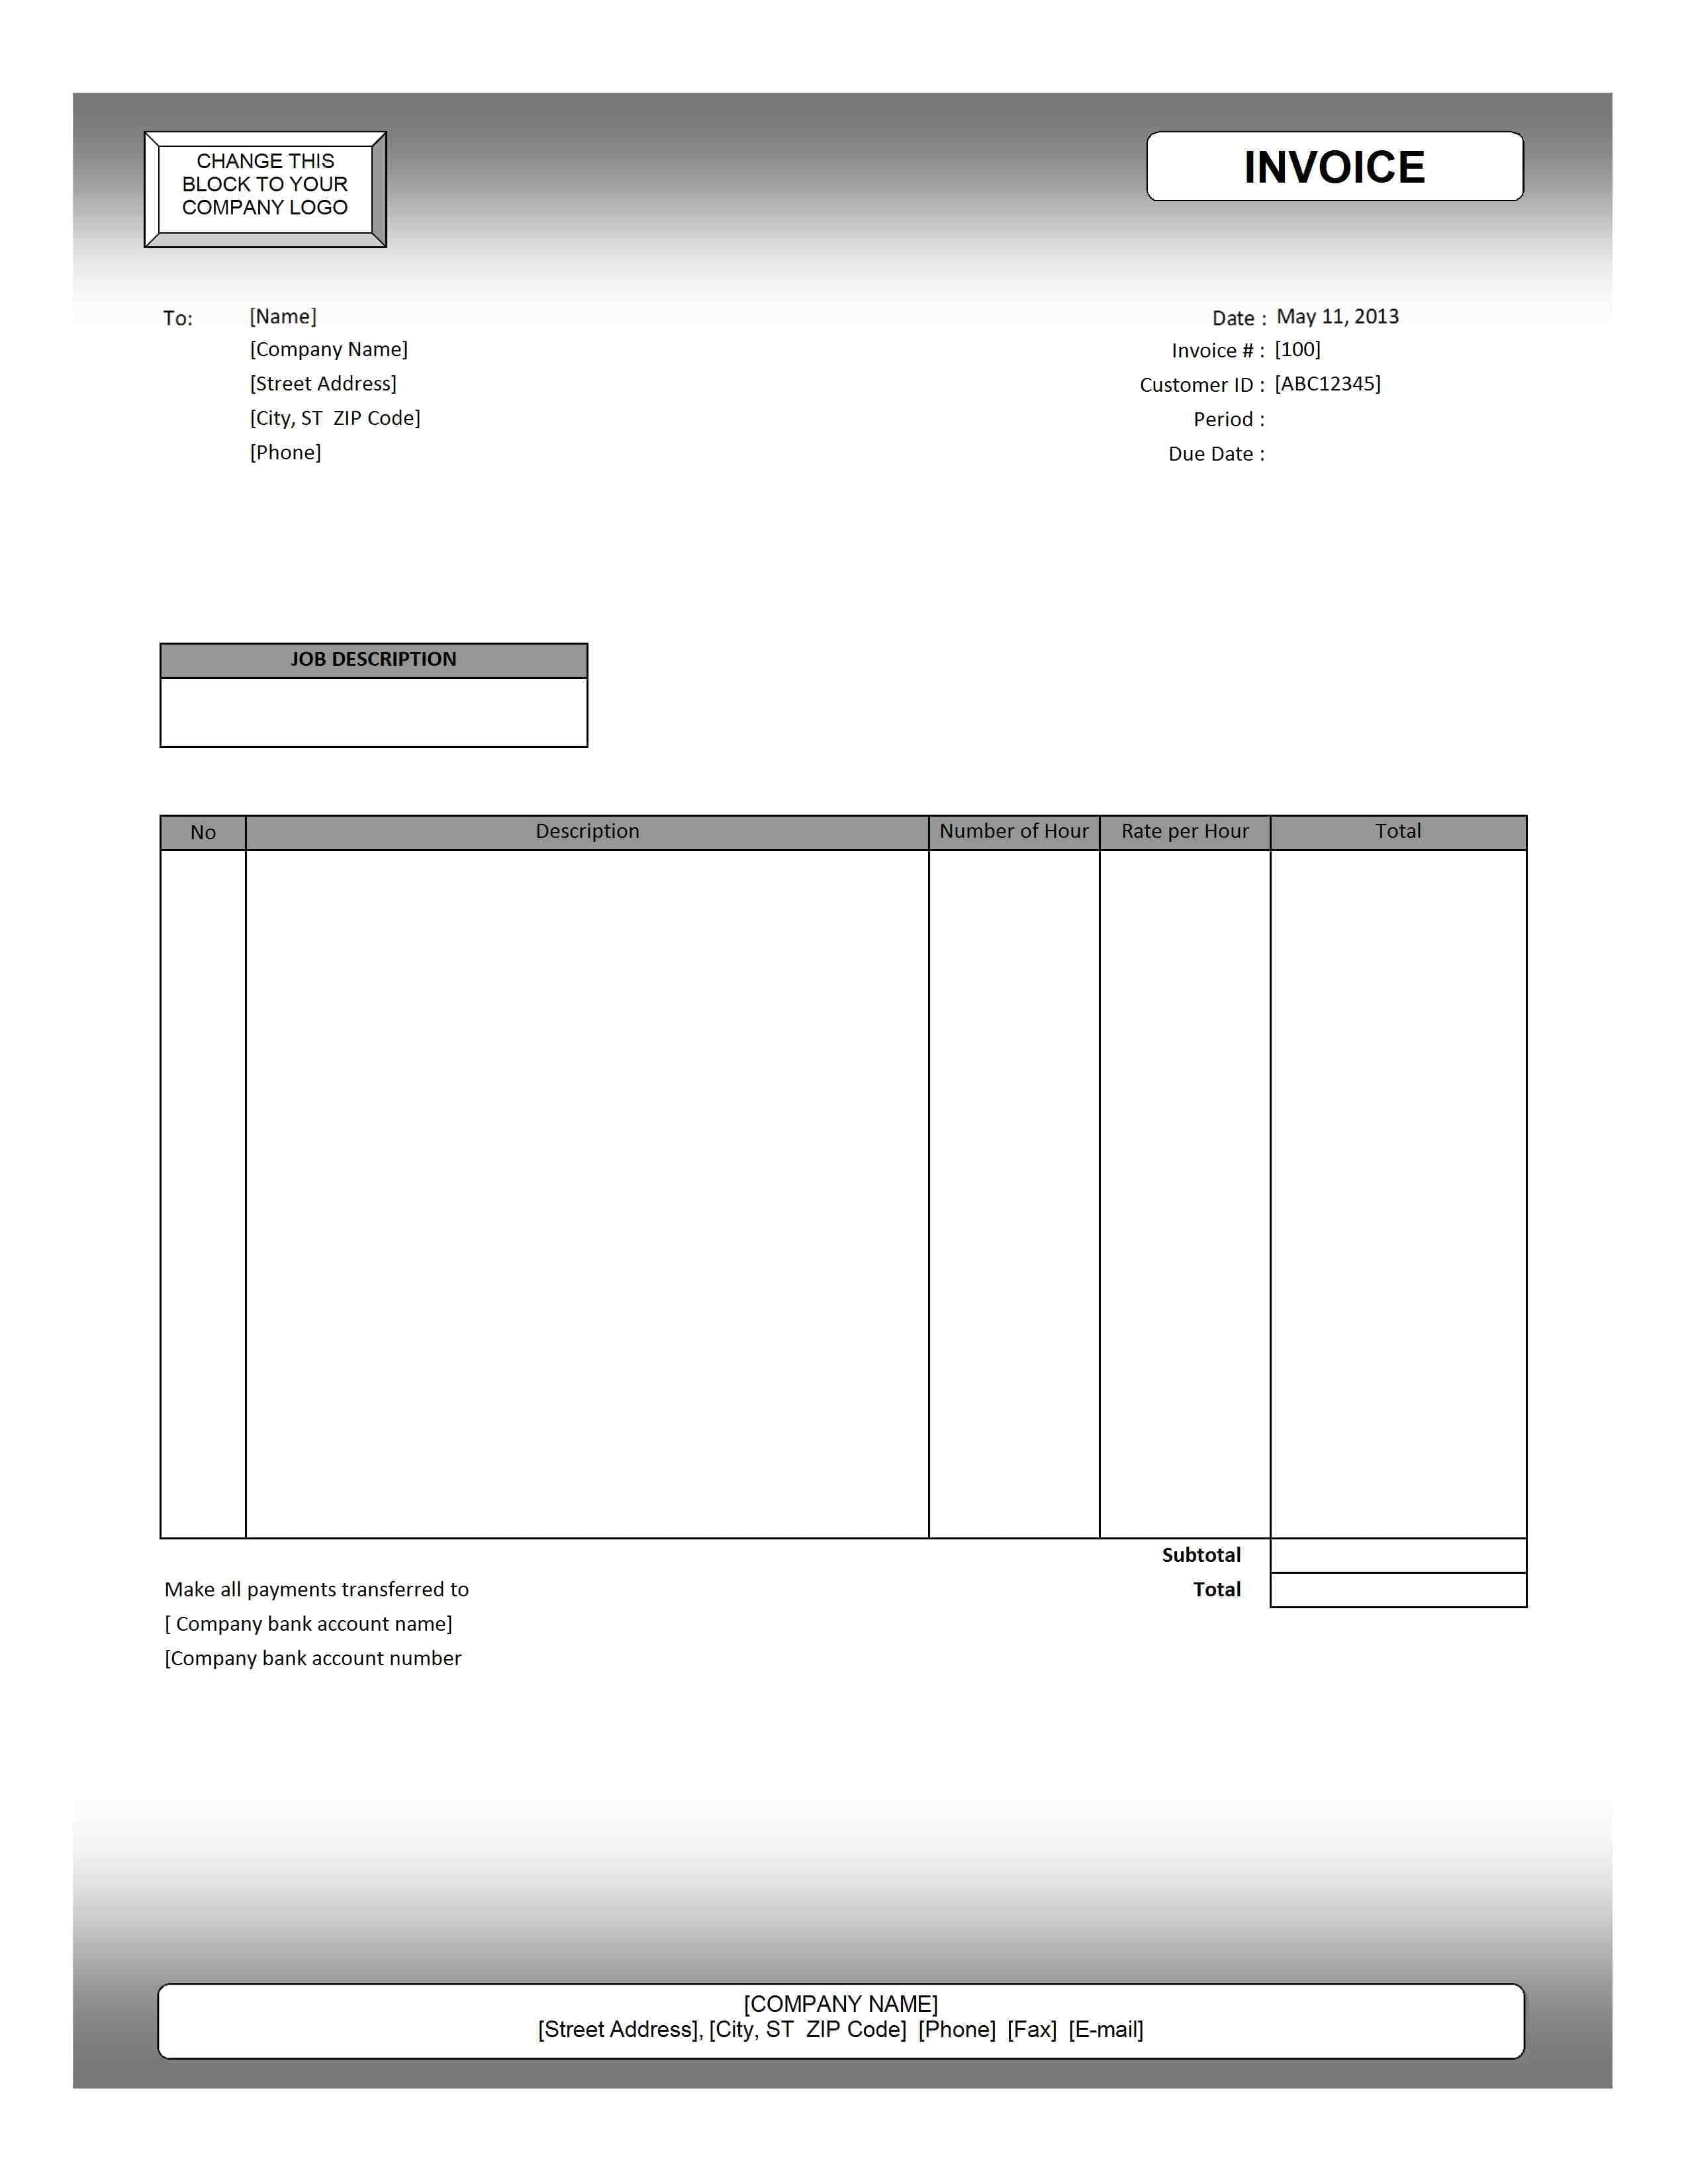 Invoice Example Invoice Template Google Docs Spreadsheet Templates for Busines Spreadsheet Templates for Busines Invoice Template Google Docs